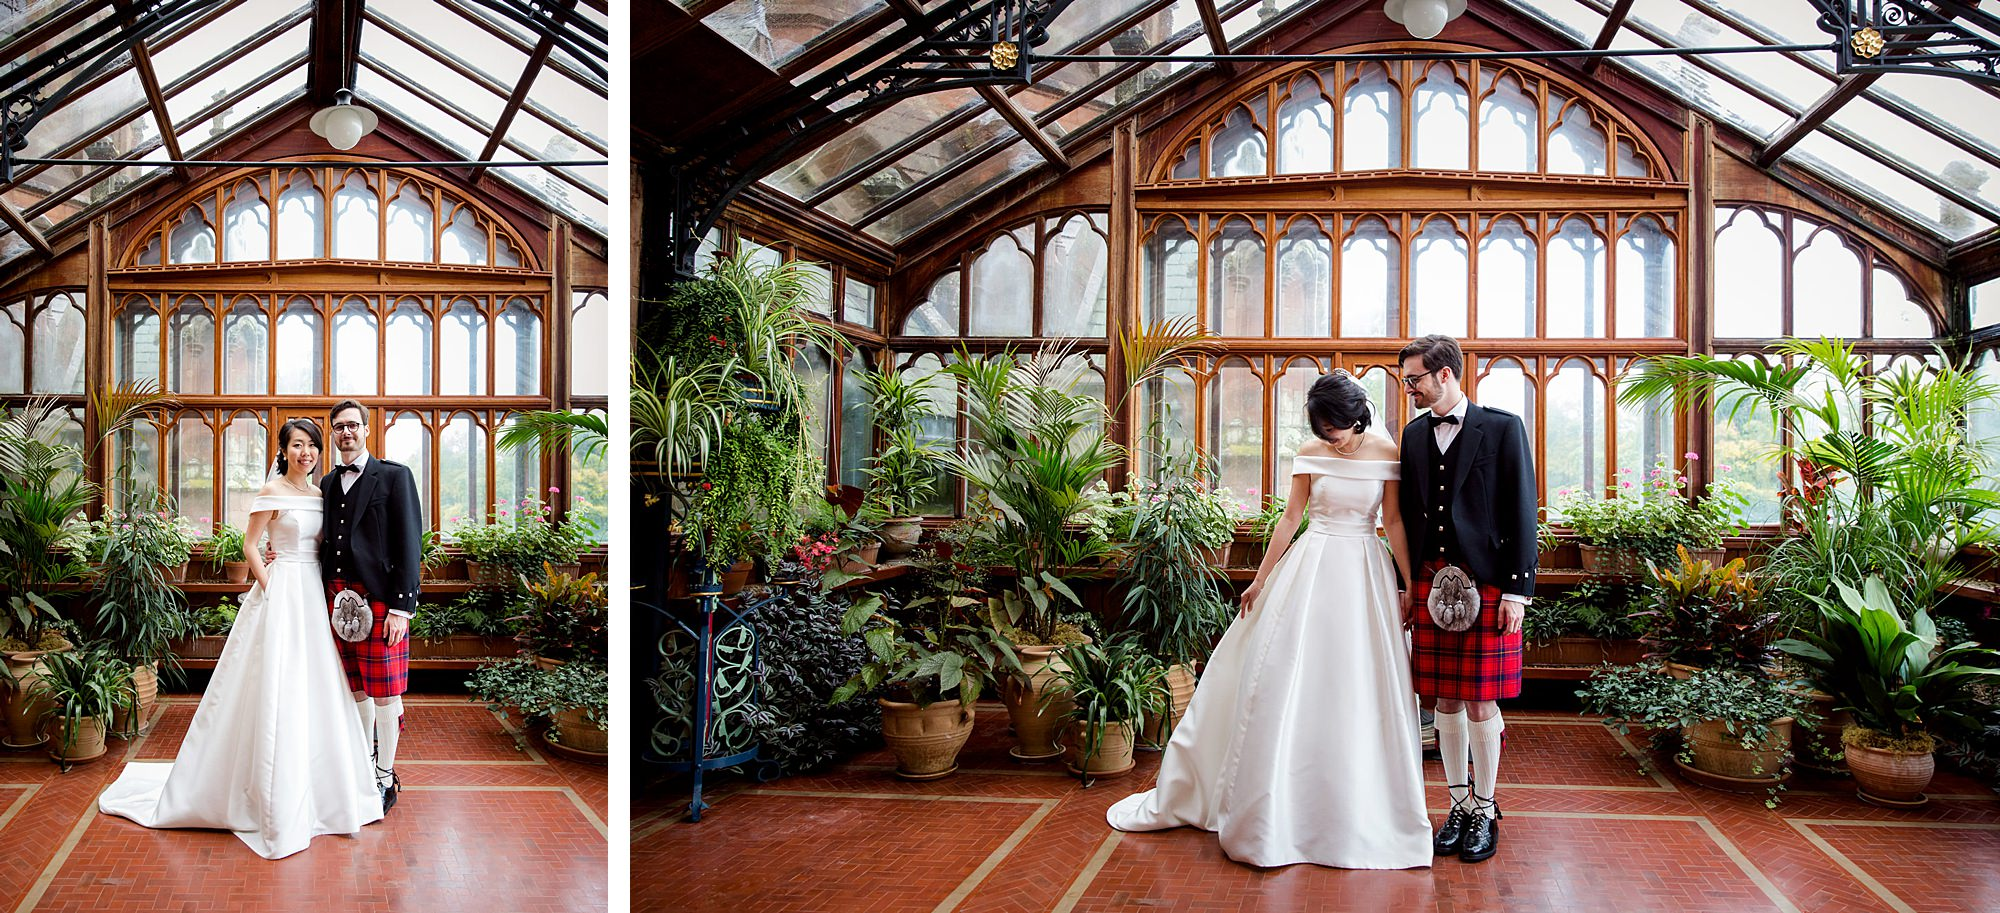 intimate wedding scotland portrait if bride and groom in conservatory